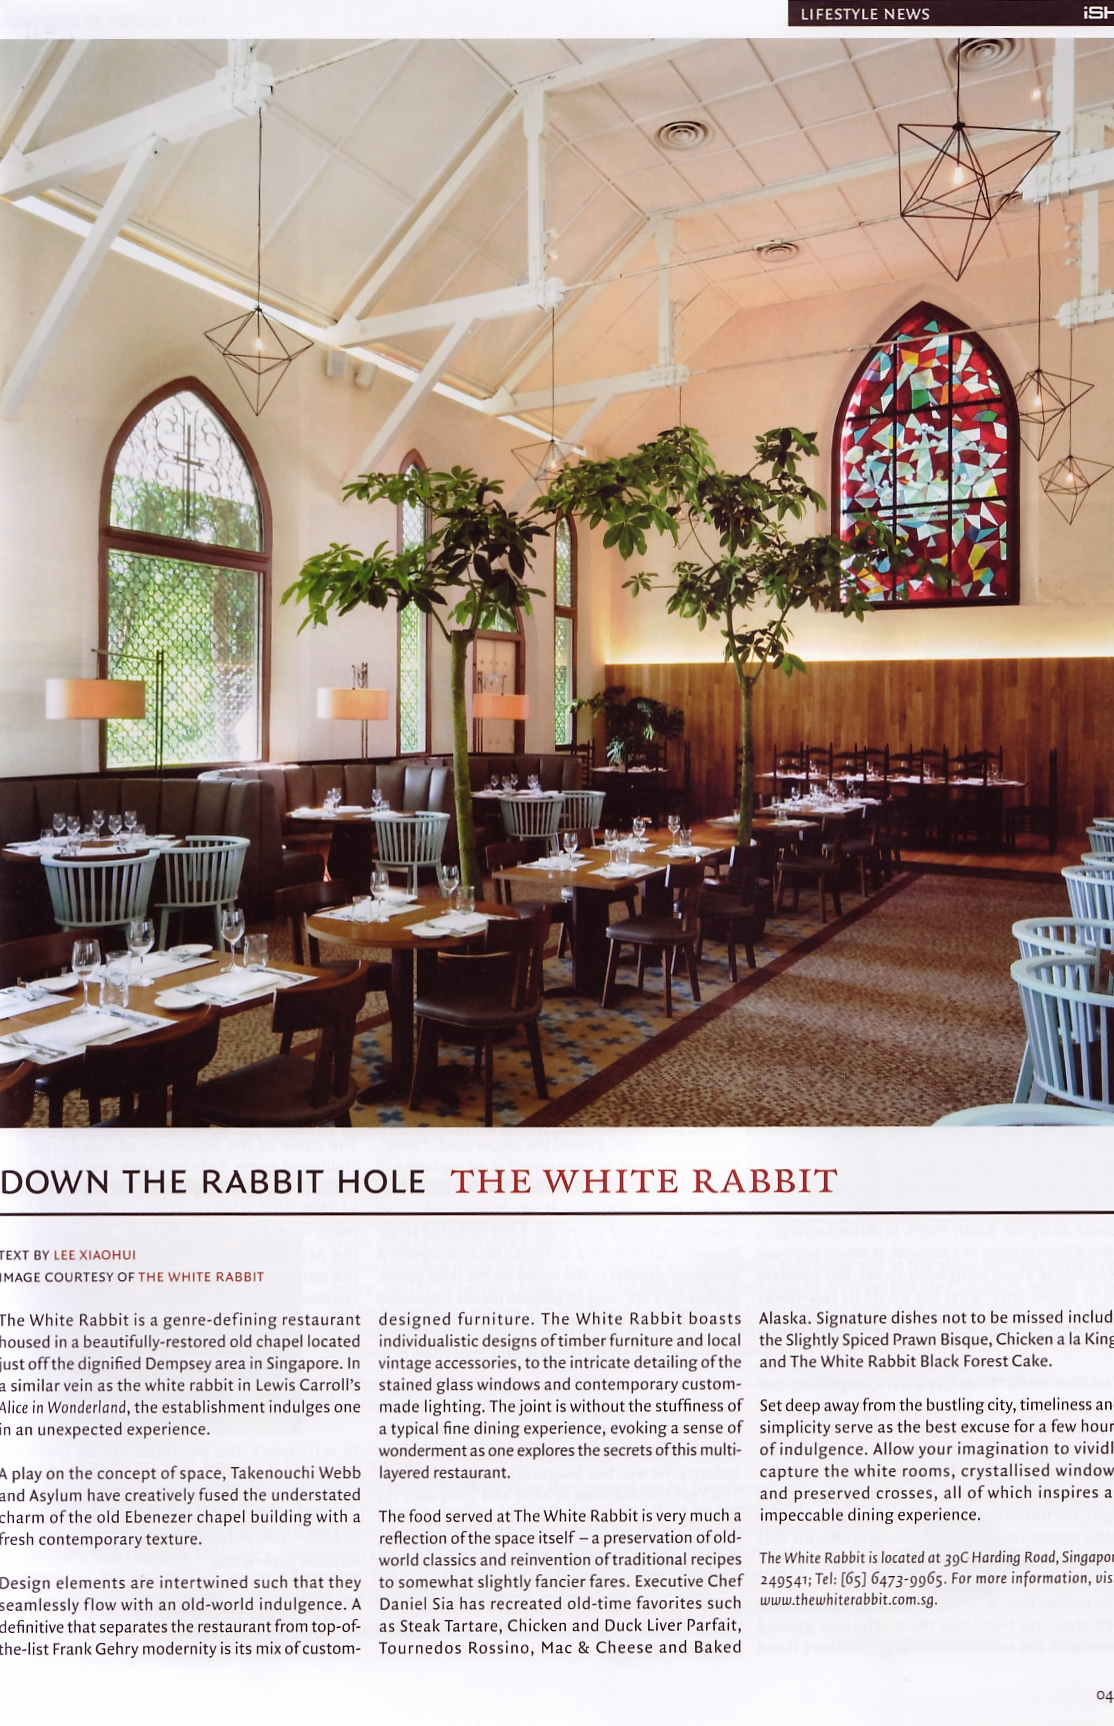 the white rabbit_0002.jpg